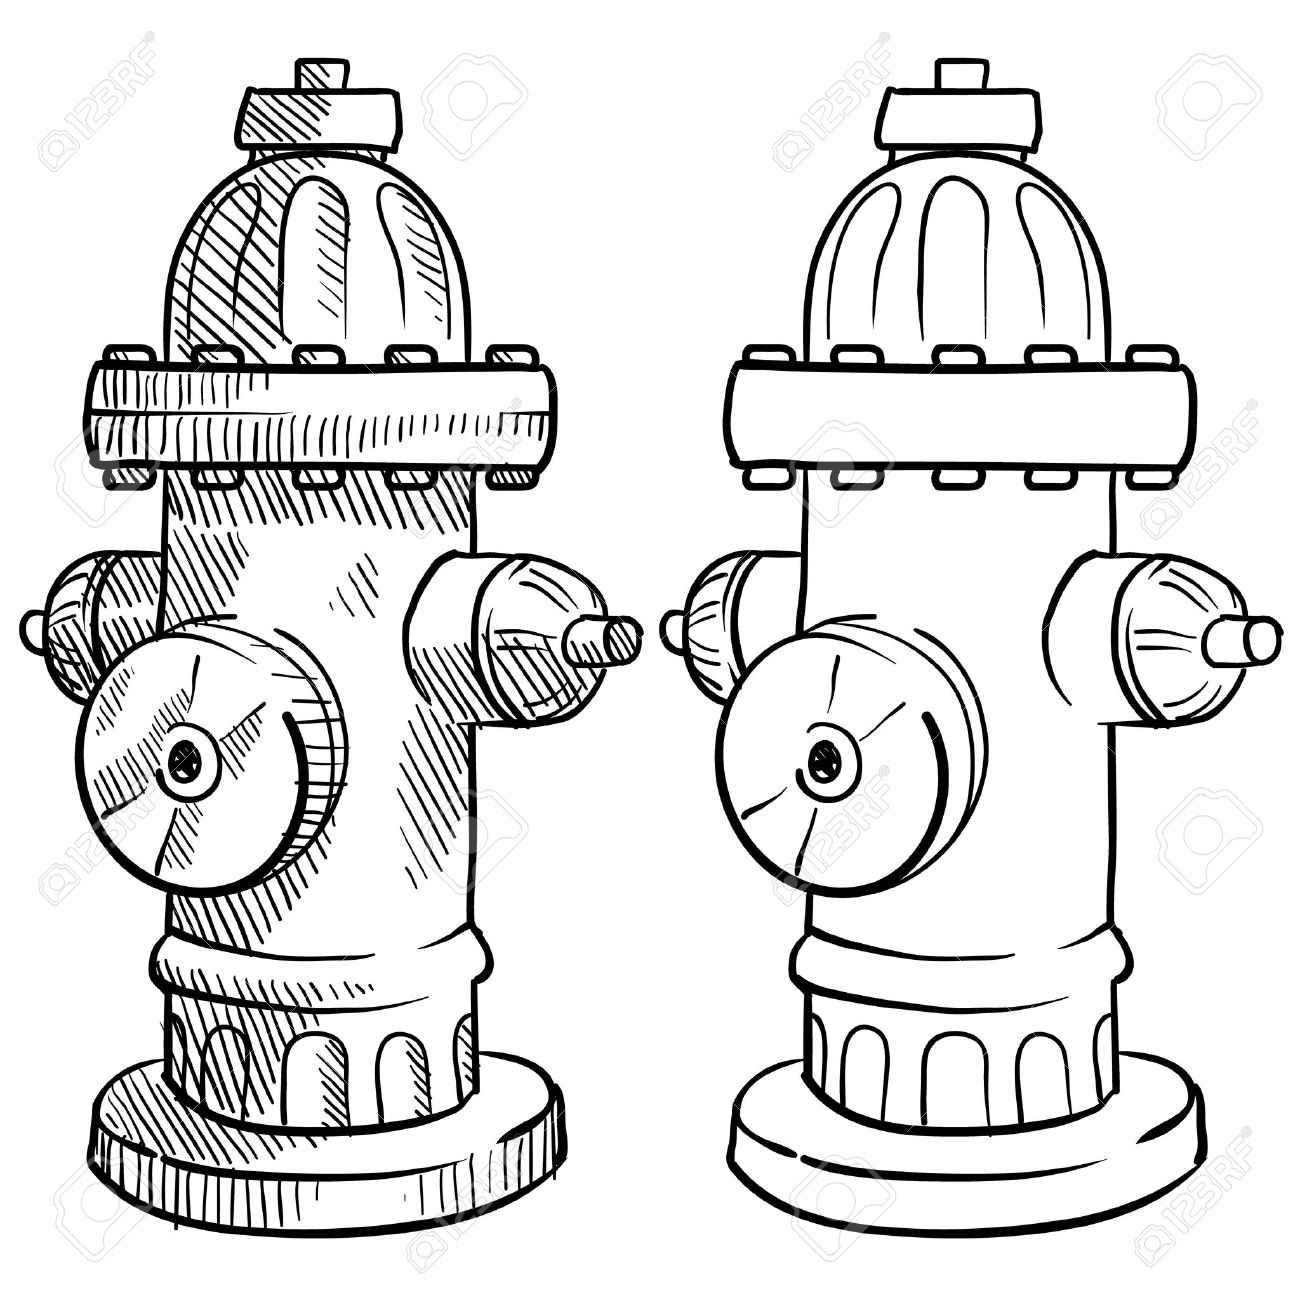 Doodle style fire hydrant illustration - 13258762